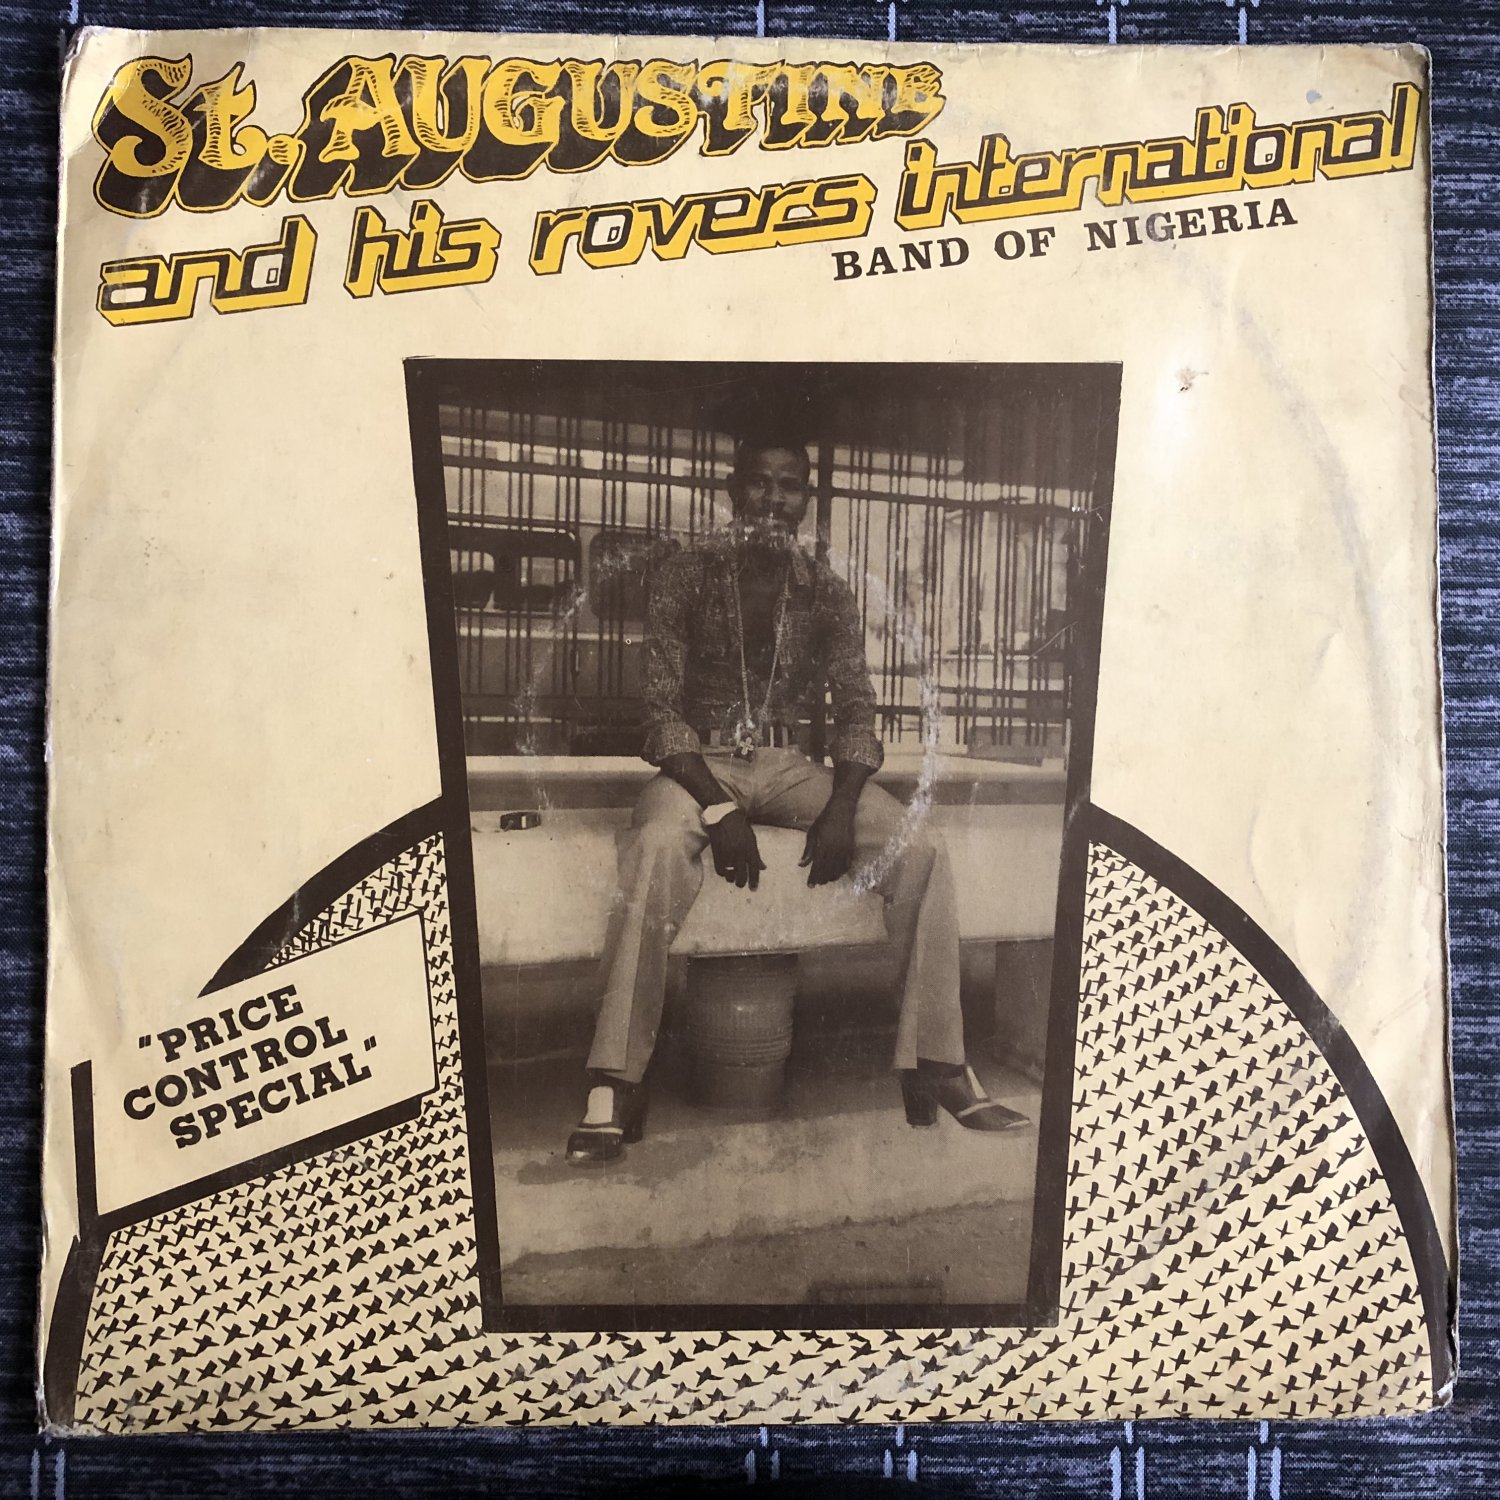 ST AUGUSTINE & HIS ROVERS INT. BAND LP price control special NIGERIA mp3 LISTEN